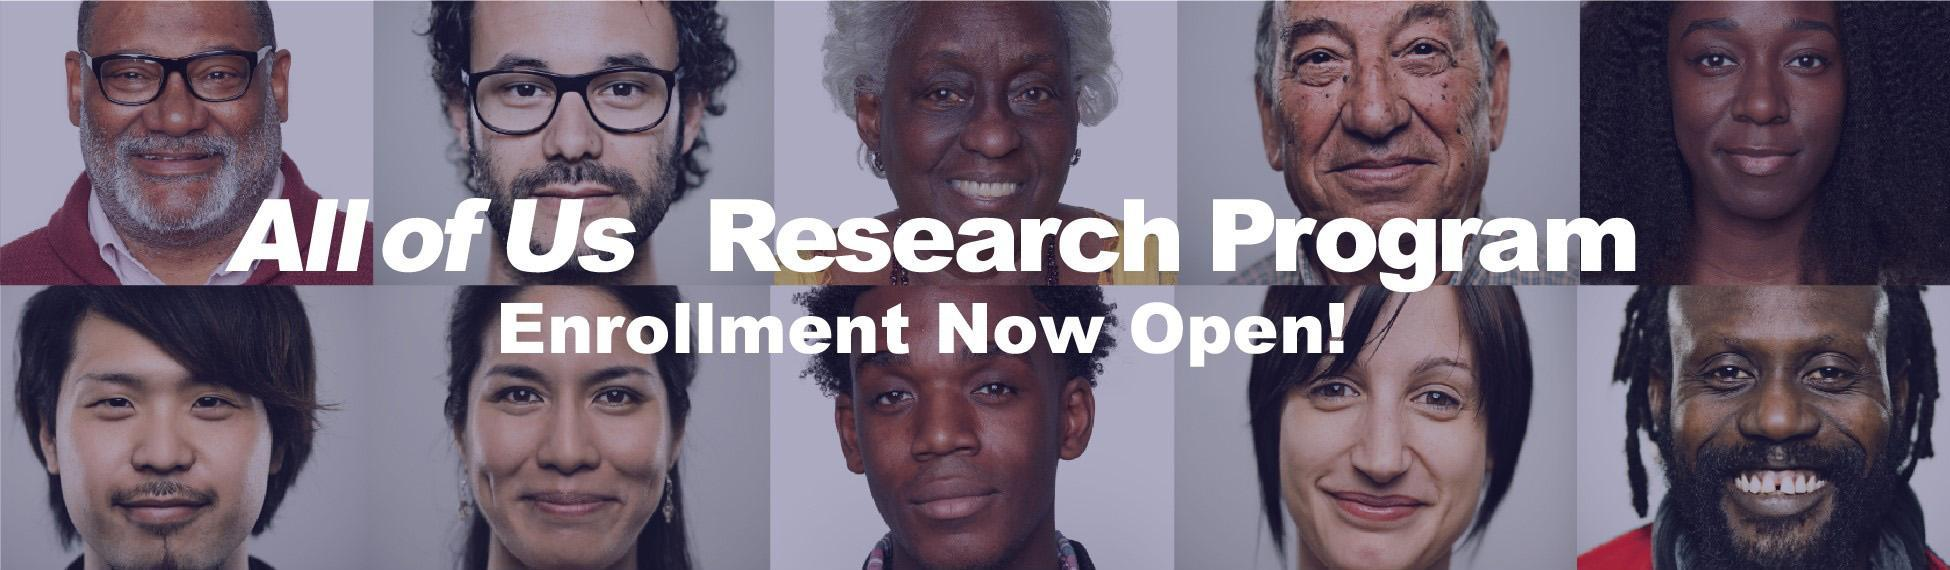 All of Us Research Program - Enrollment Now Open!